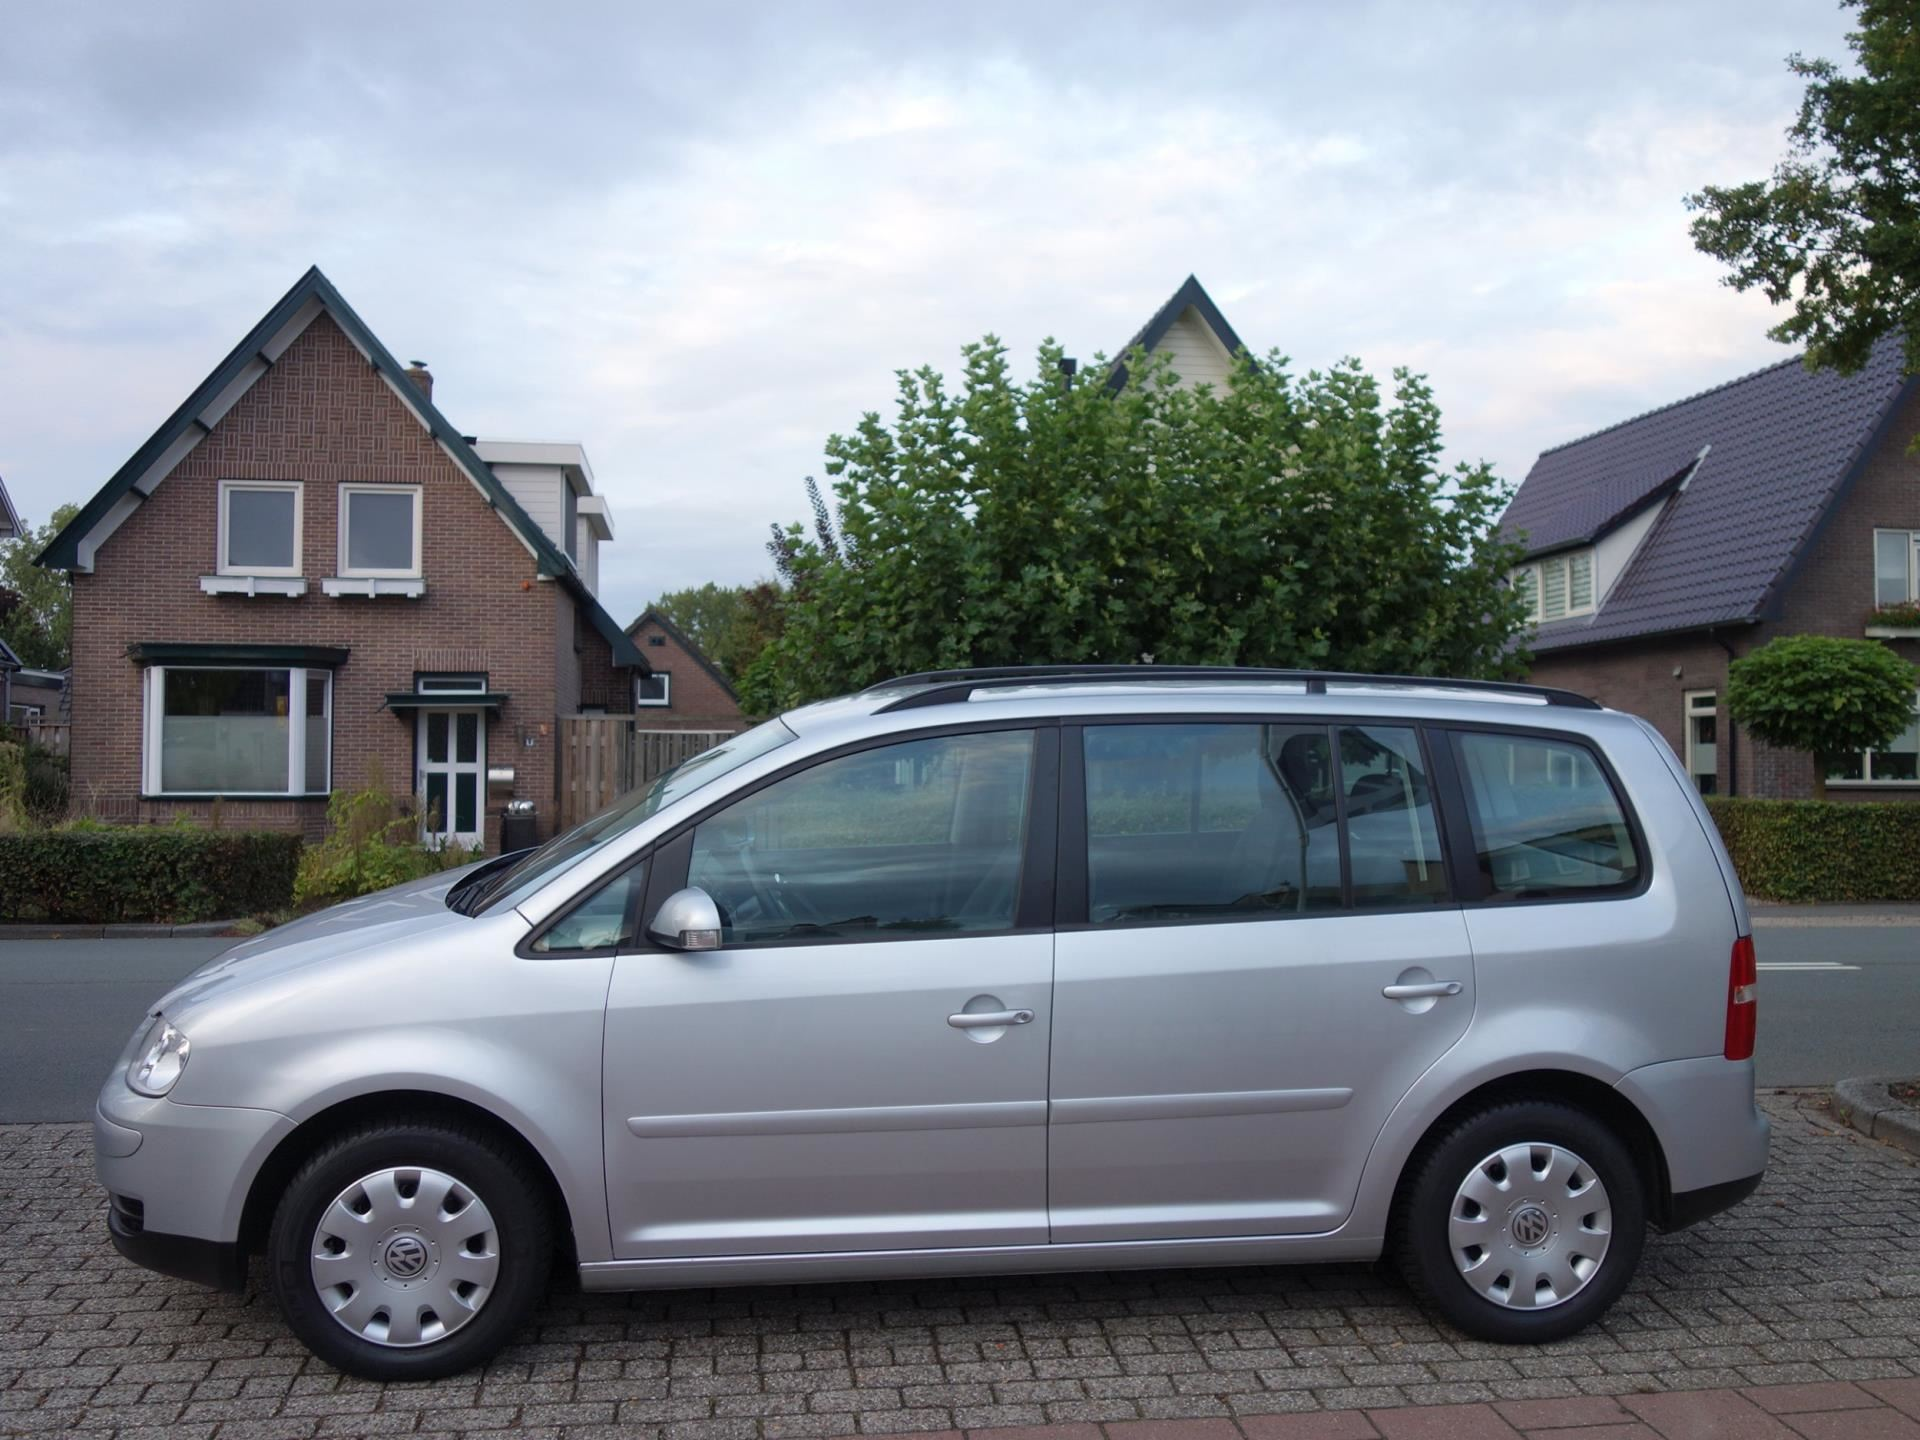 Volkswagen Touran occasion - De Vries Automotive Apeldoorn